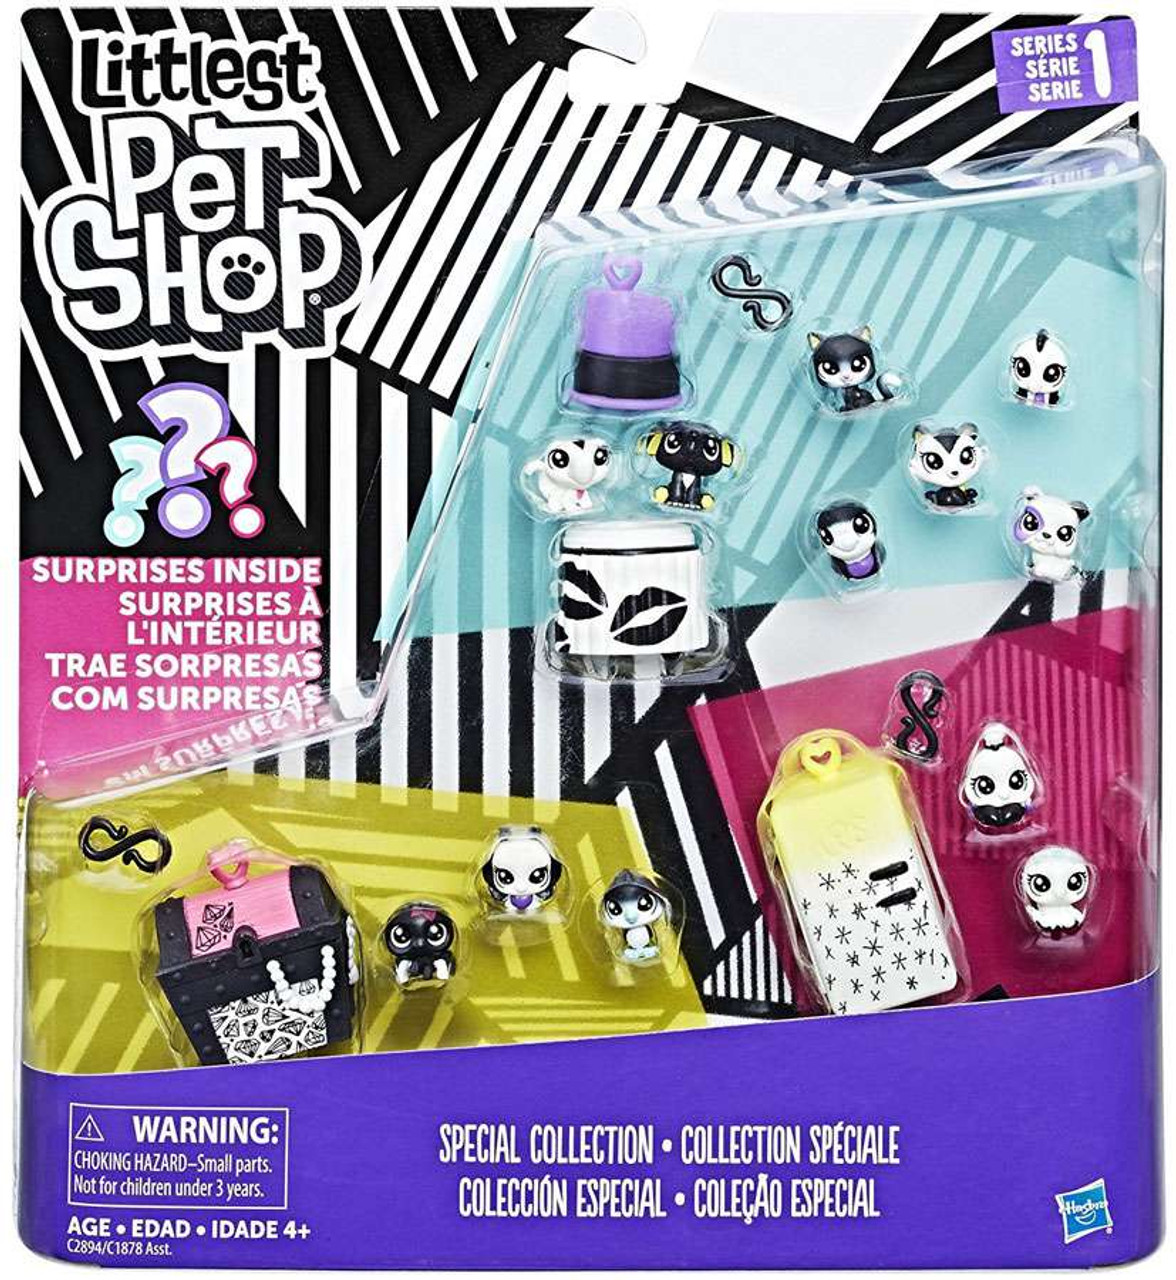 786438ebd3571 Littlest Pet Shop Black White Series 1 Special Collection 1 Figure Set  Hasbro Toys - ToyWiz